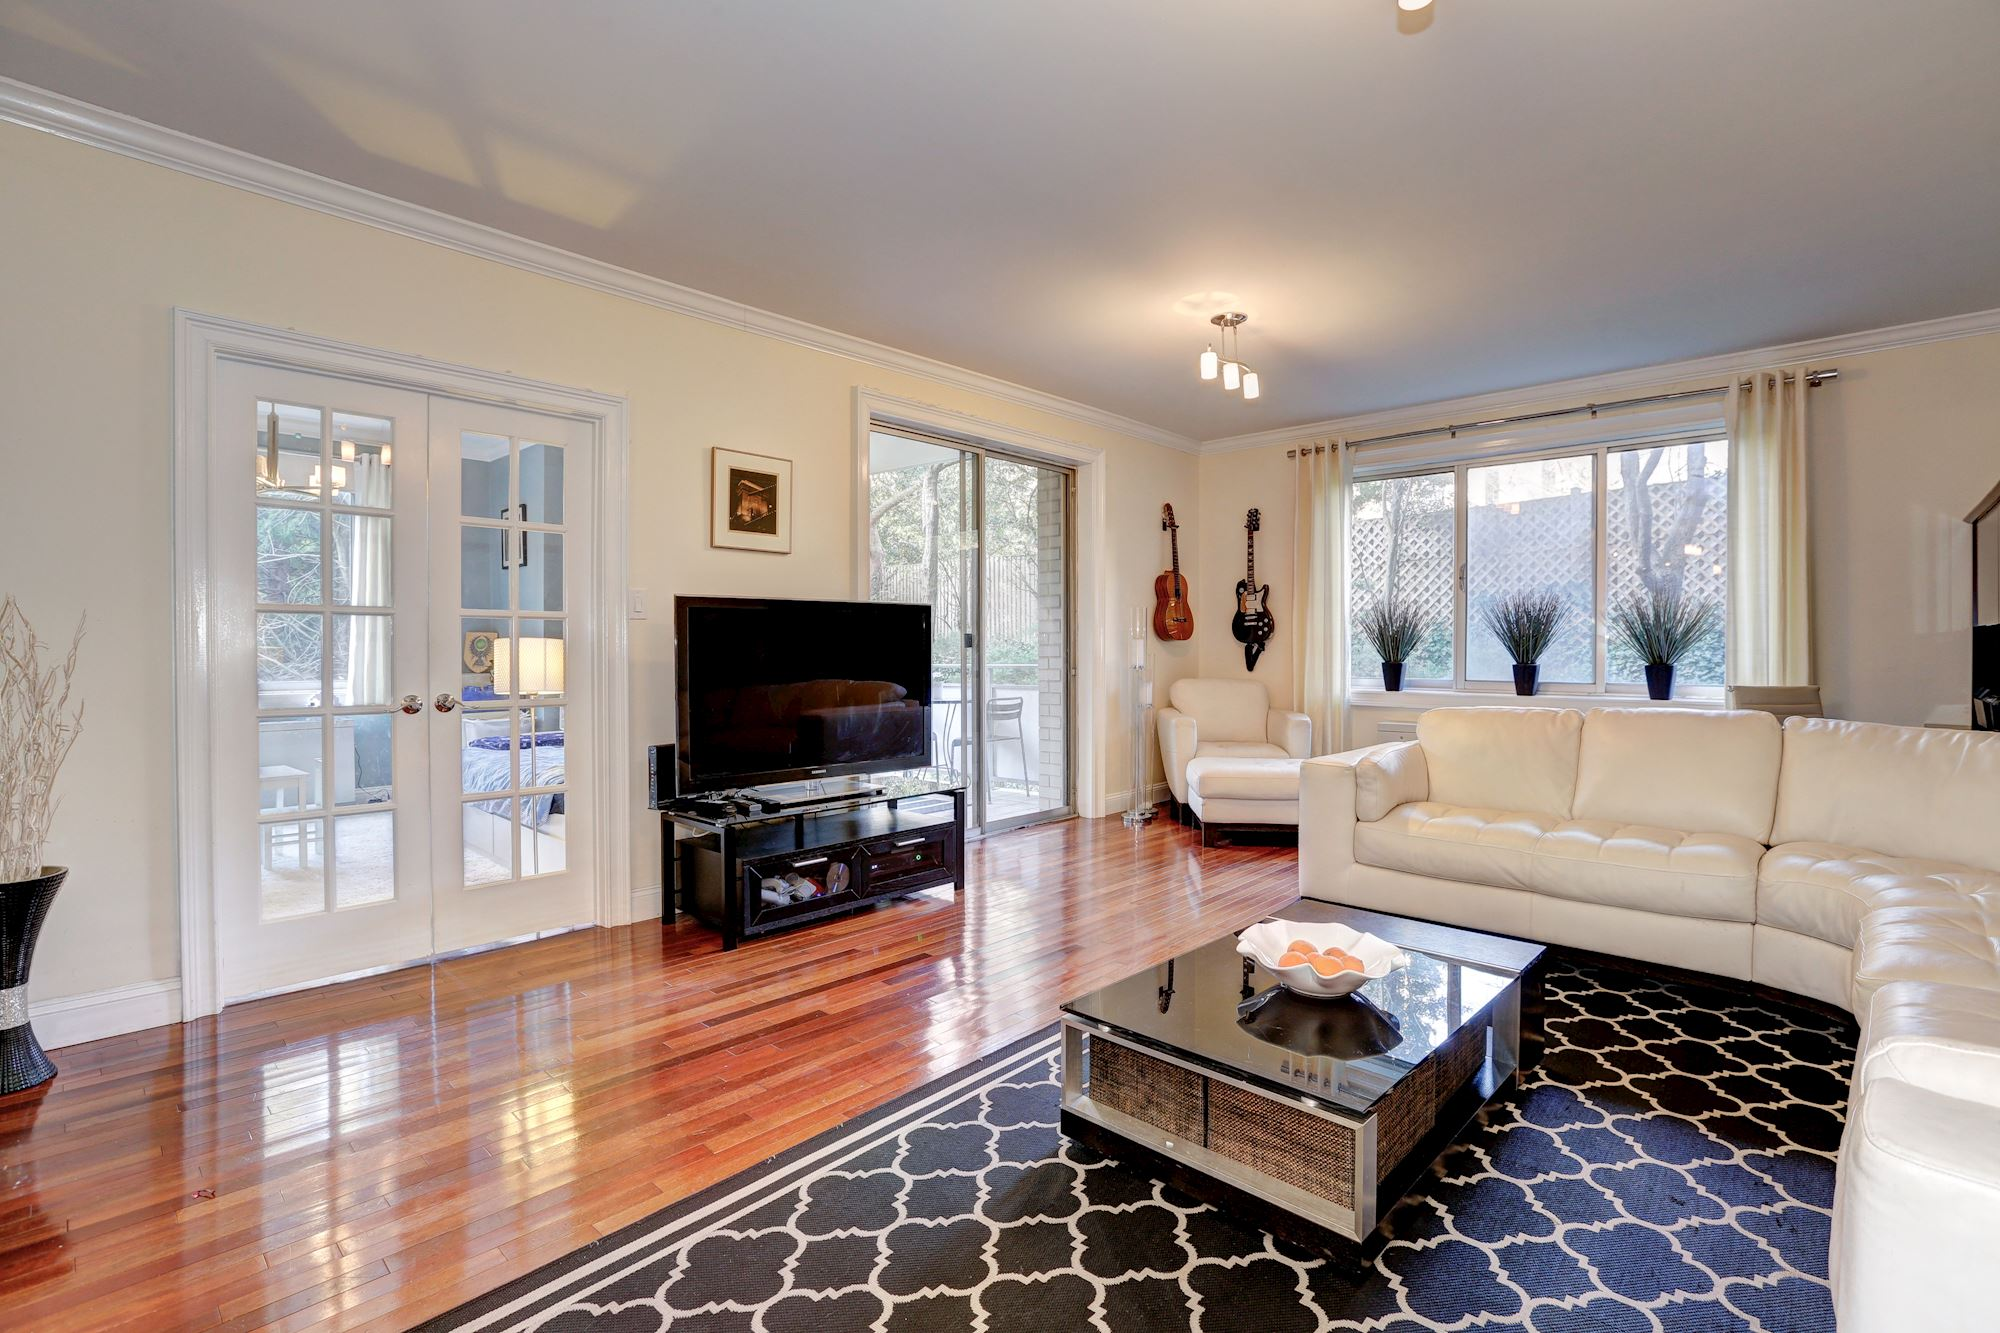 2801 new mexico ave nw 716 washington dc 20007. Black Bedroom Furniture Sets. Home Design Ideas